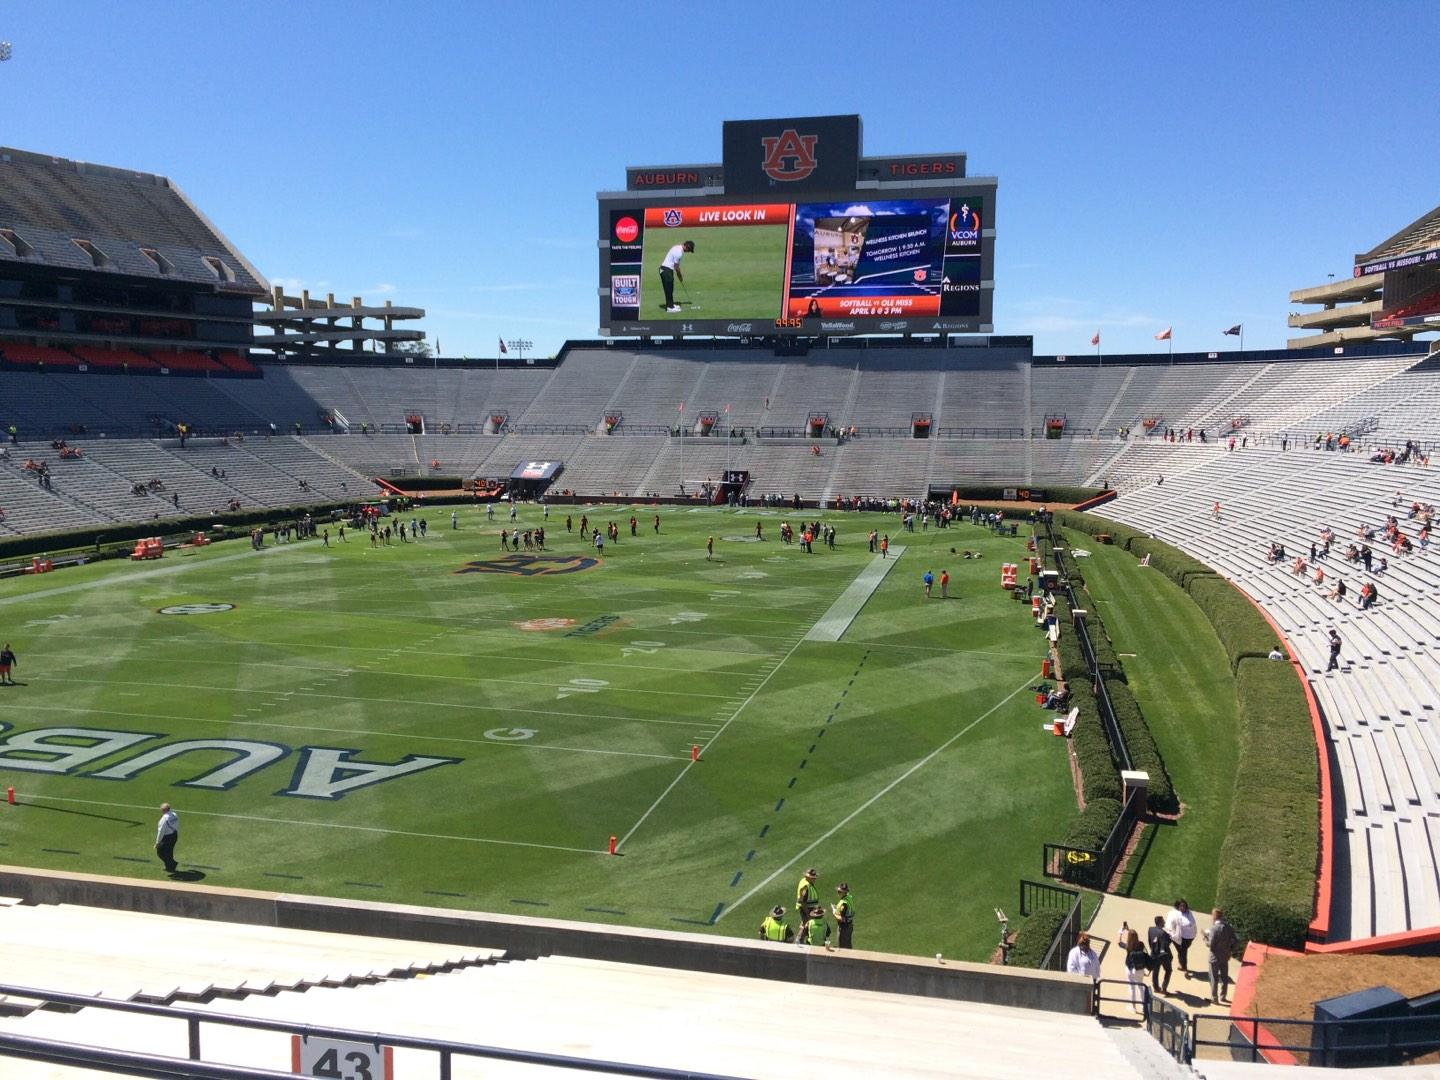 Jordan-Hare Stadium Section 43 Row 34 Seat 5